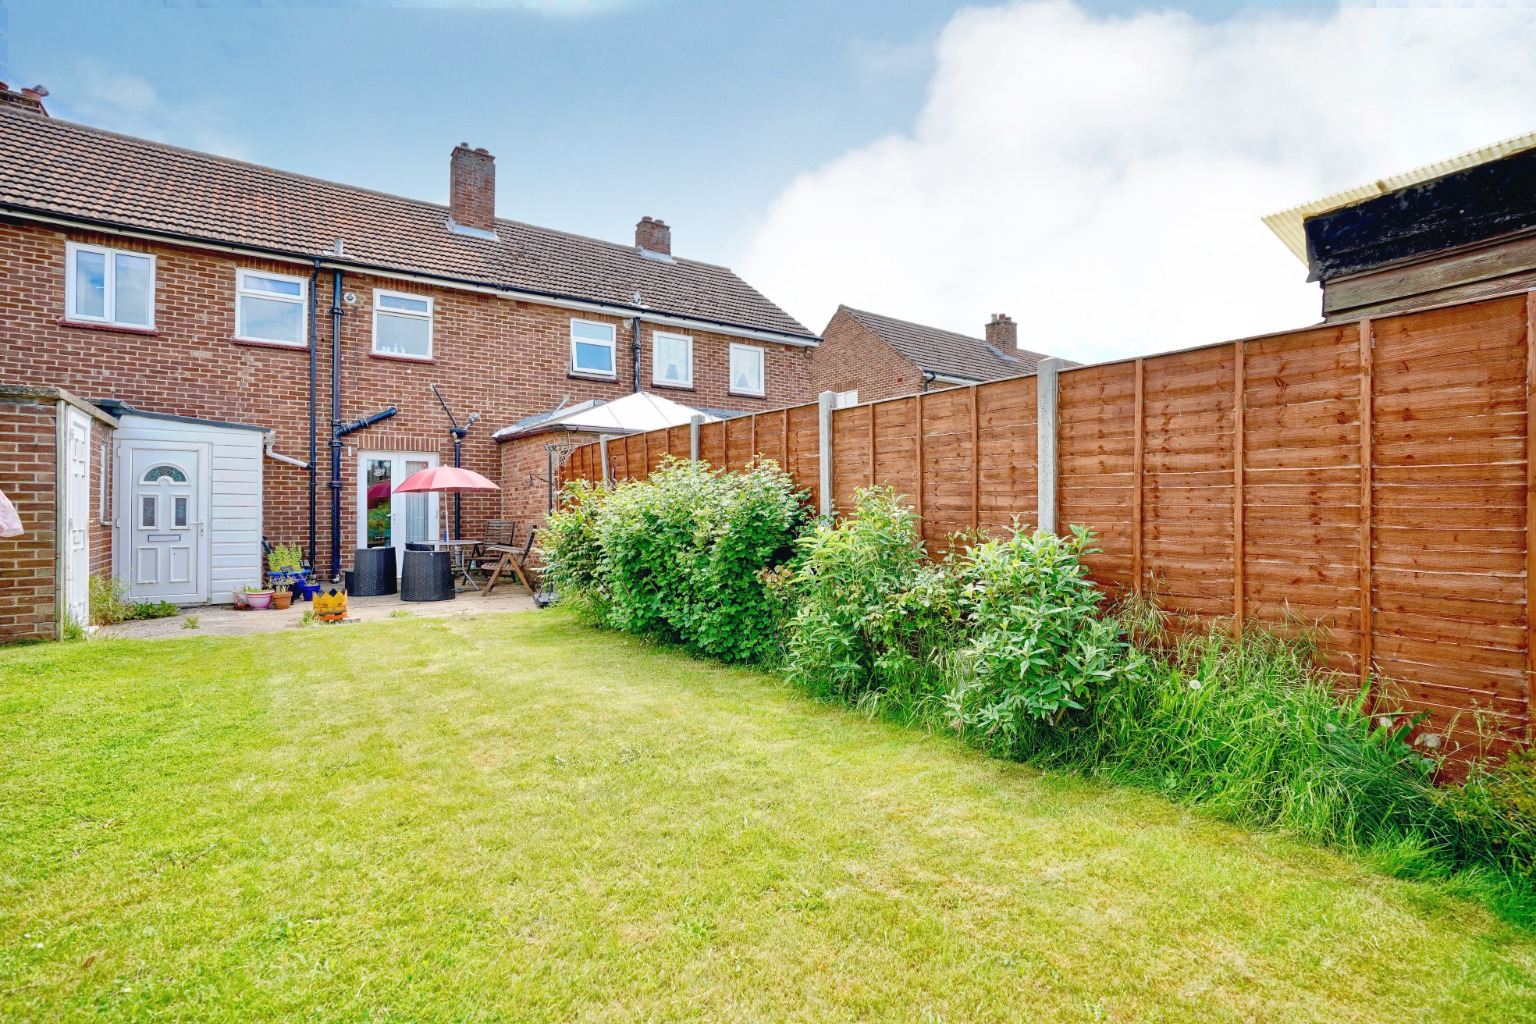 3 bed terraced house for sale in Leys Road, St. Neots 2